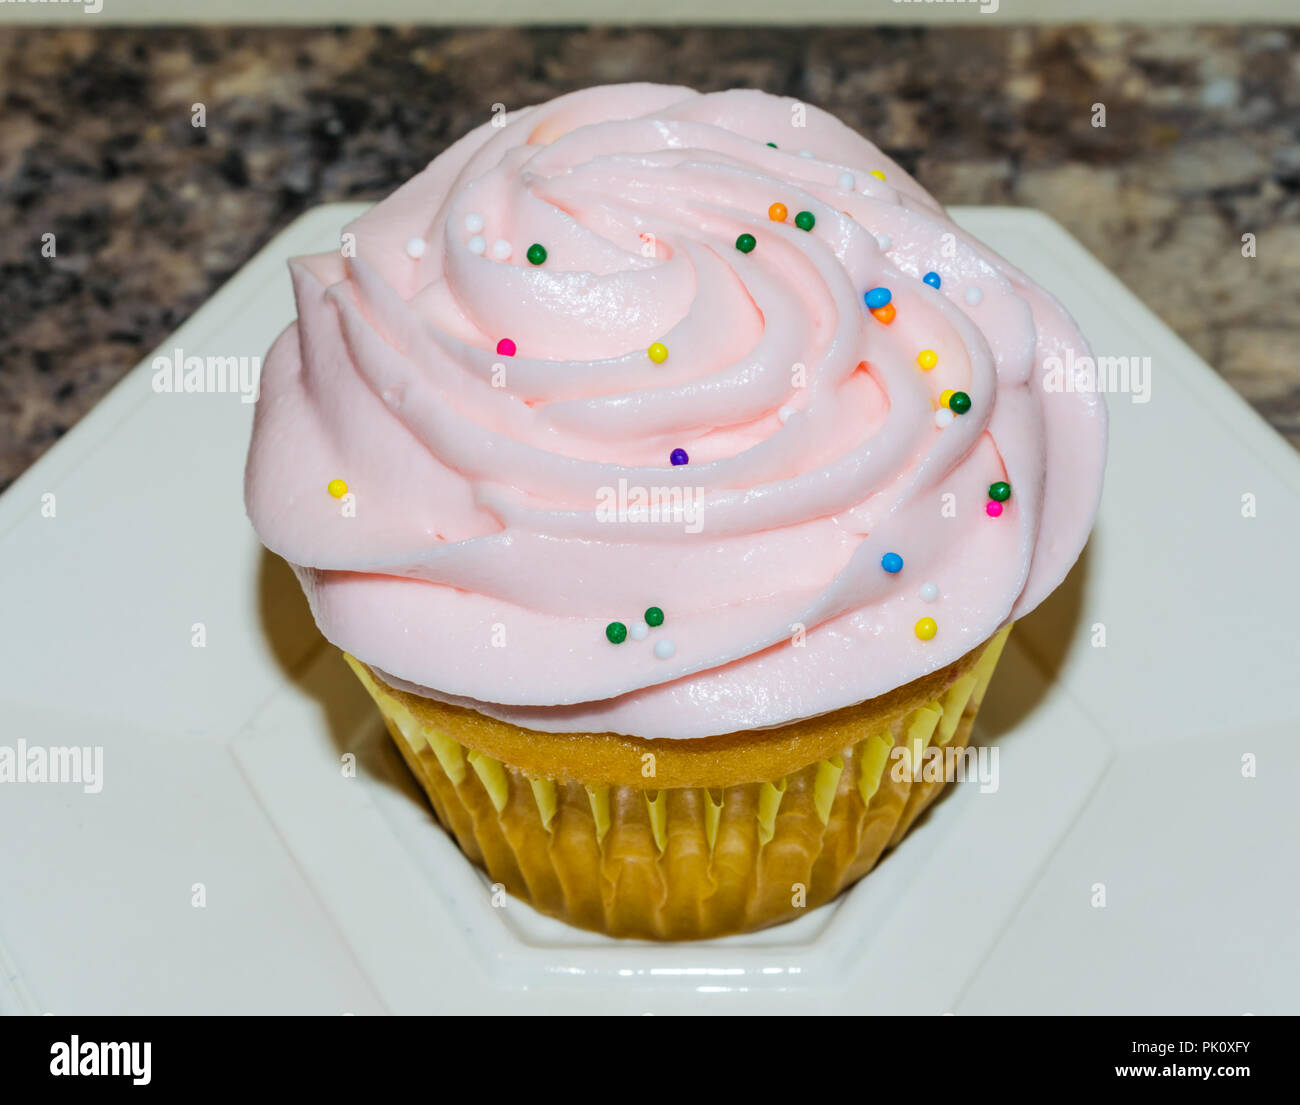 Light pink butter cream frosting swirled on top of fresh homemade cupcake. Colorful candy sprinkles sprinkled on top. Delicious sweet treat for party. - Stock Image